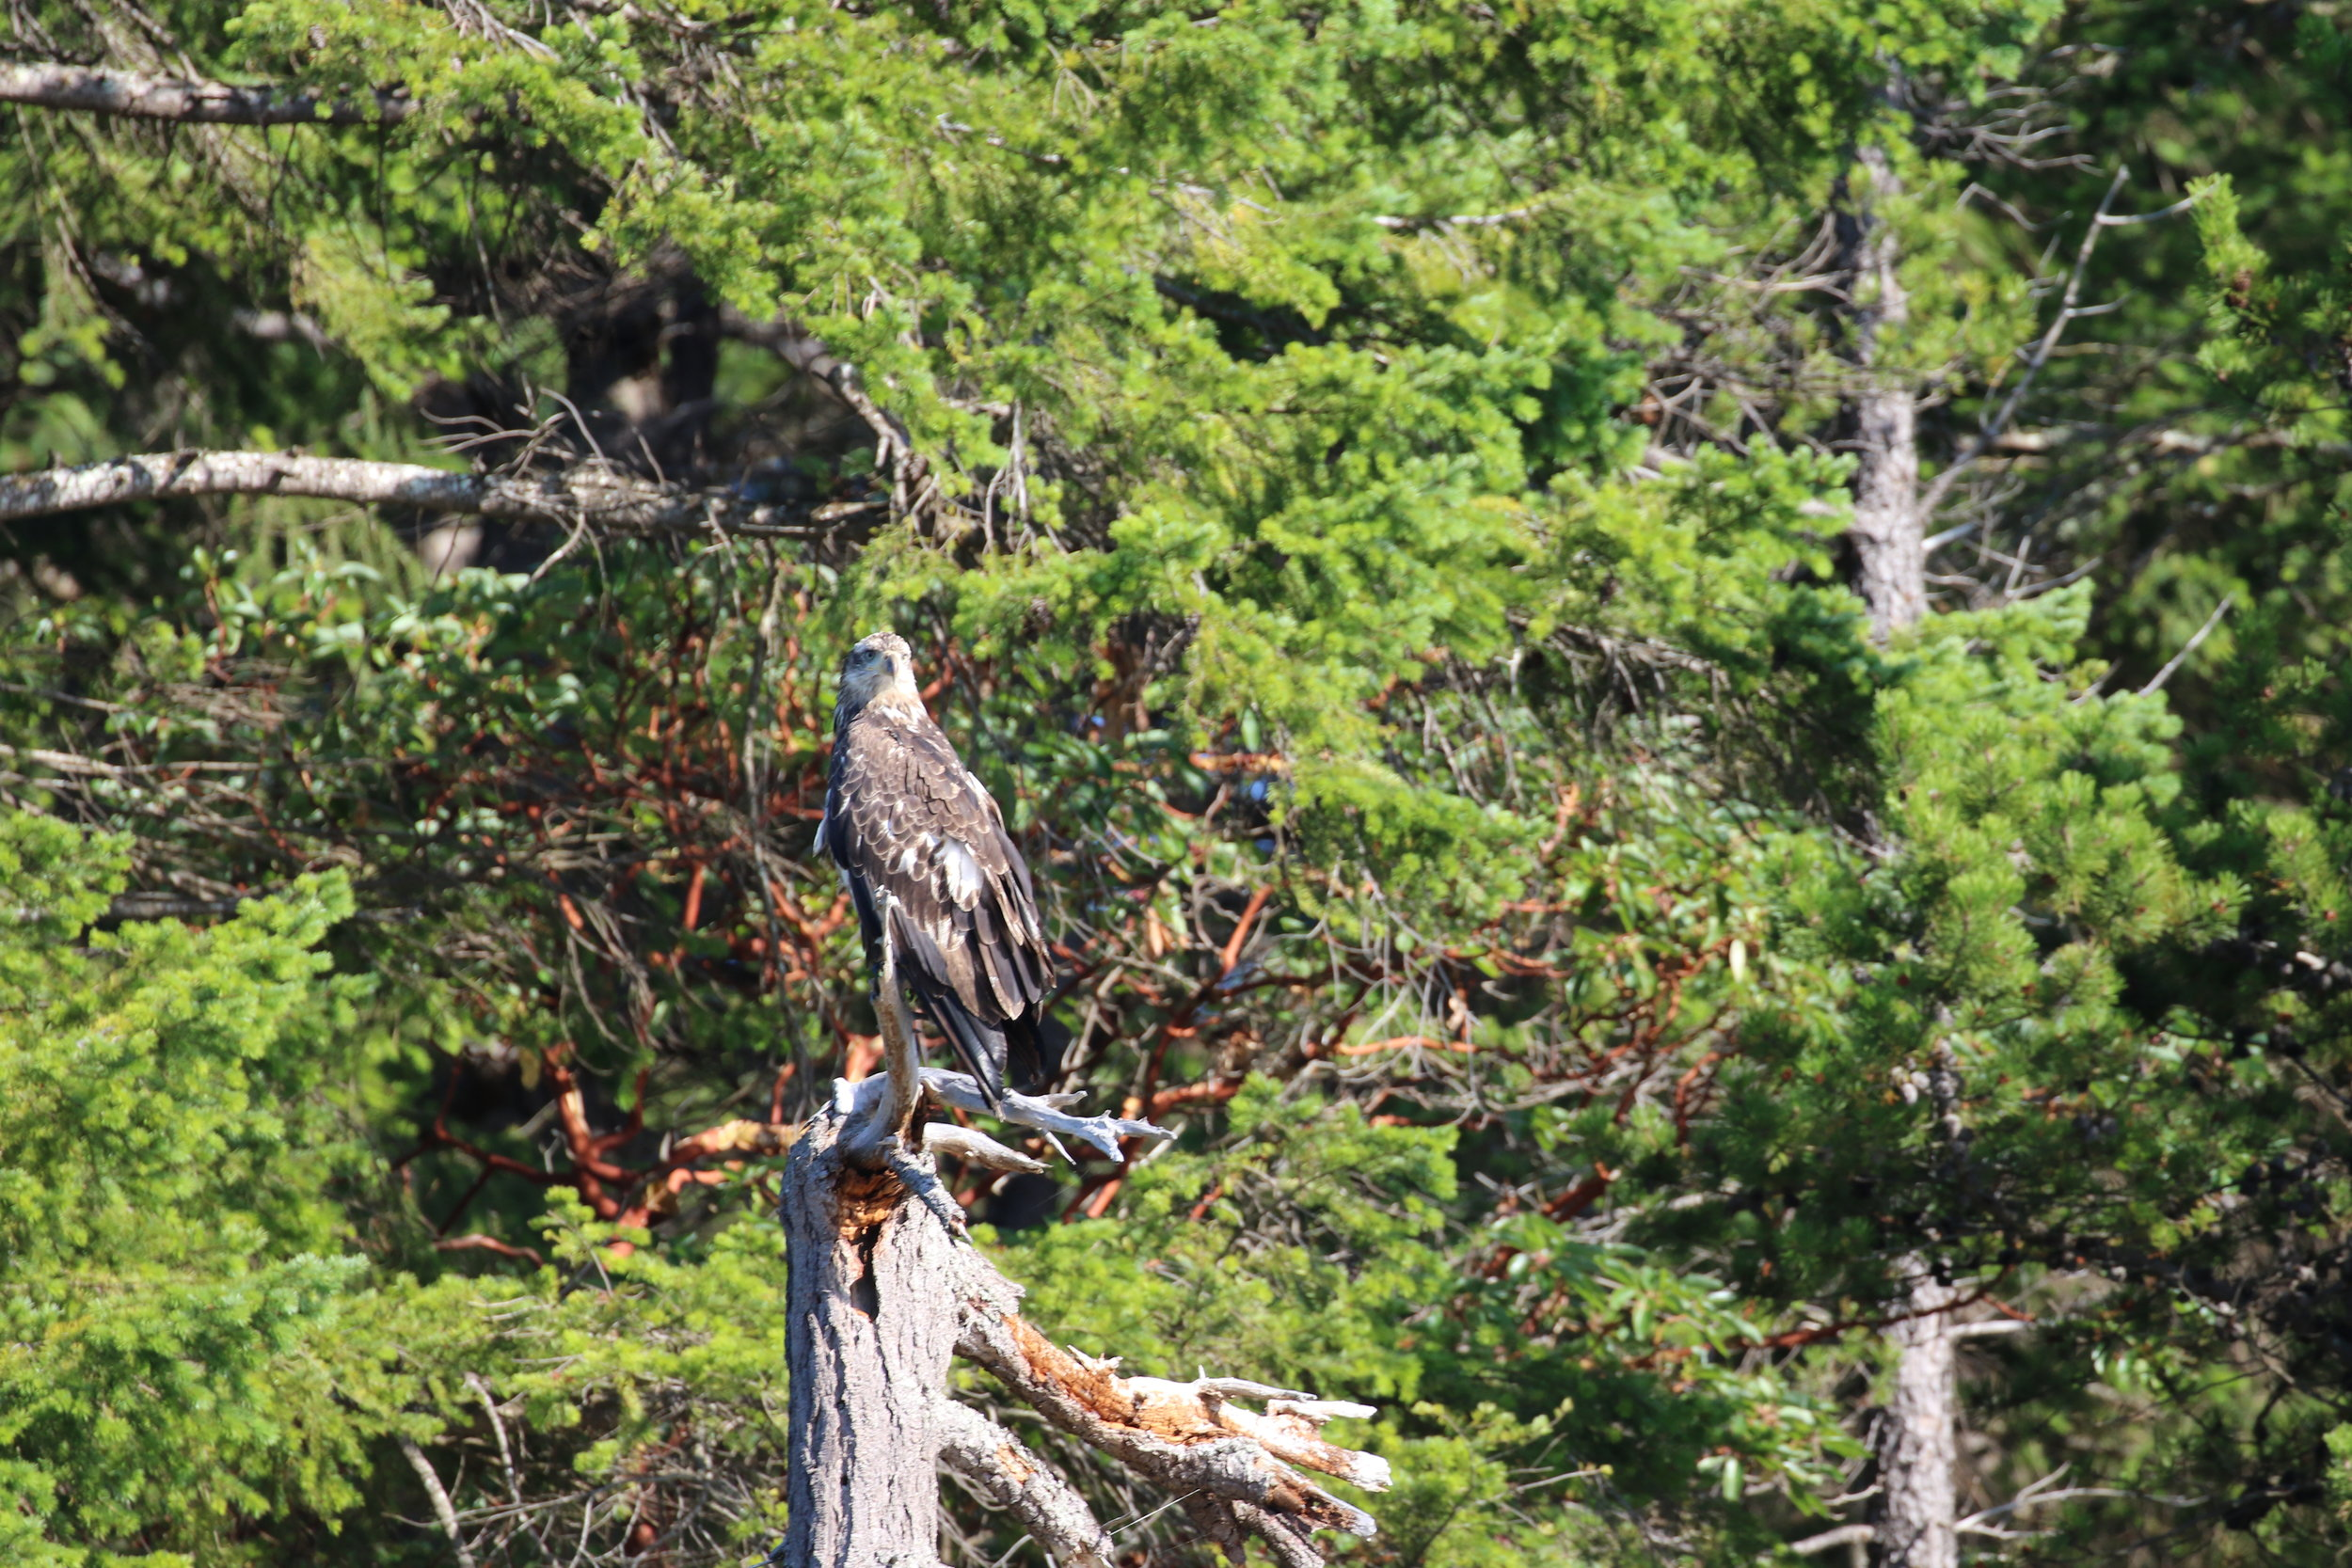 A young bald eagle. Photo by Ryan Uslu (3:30).